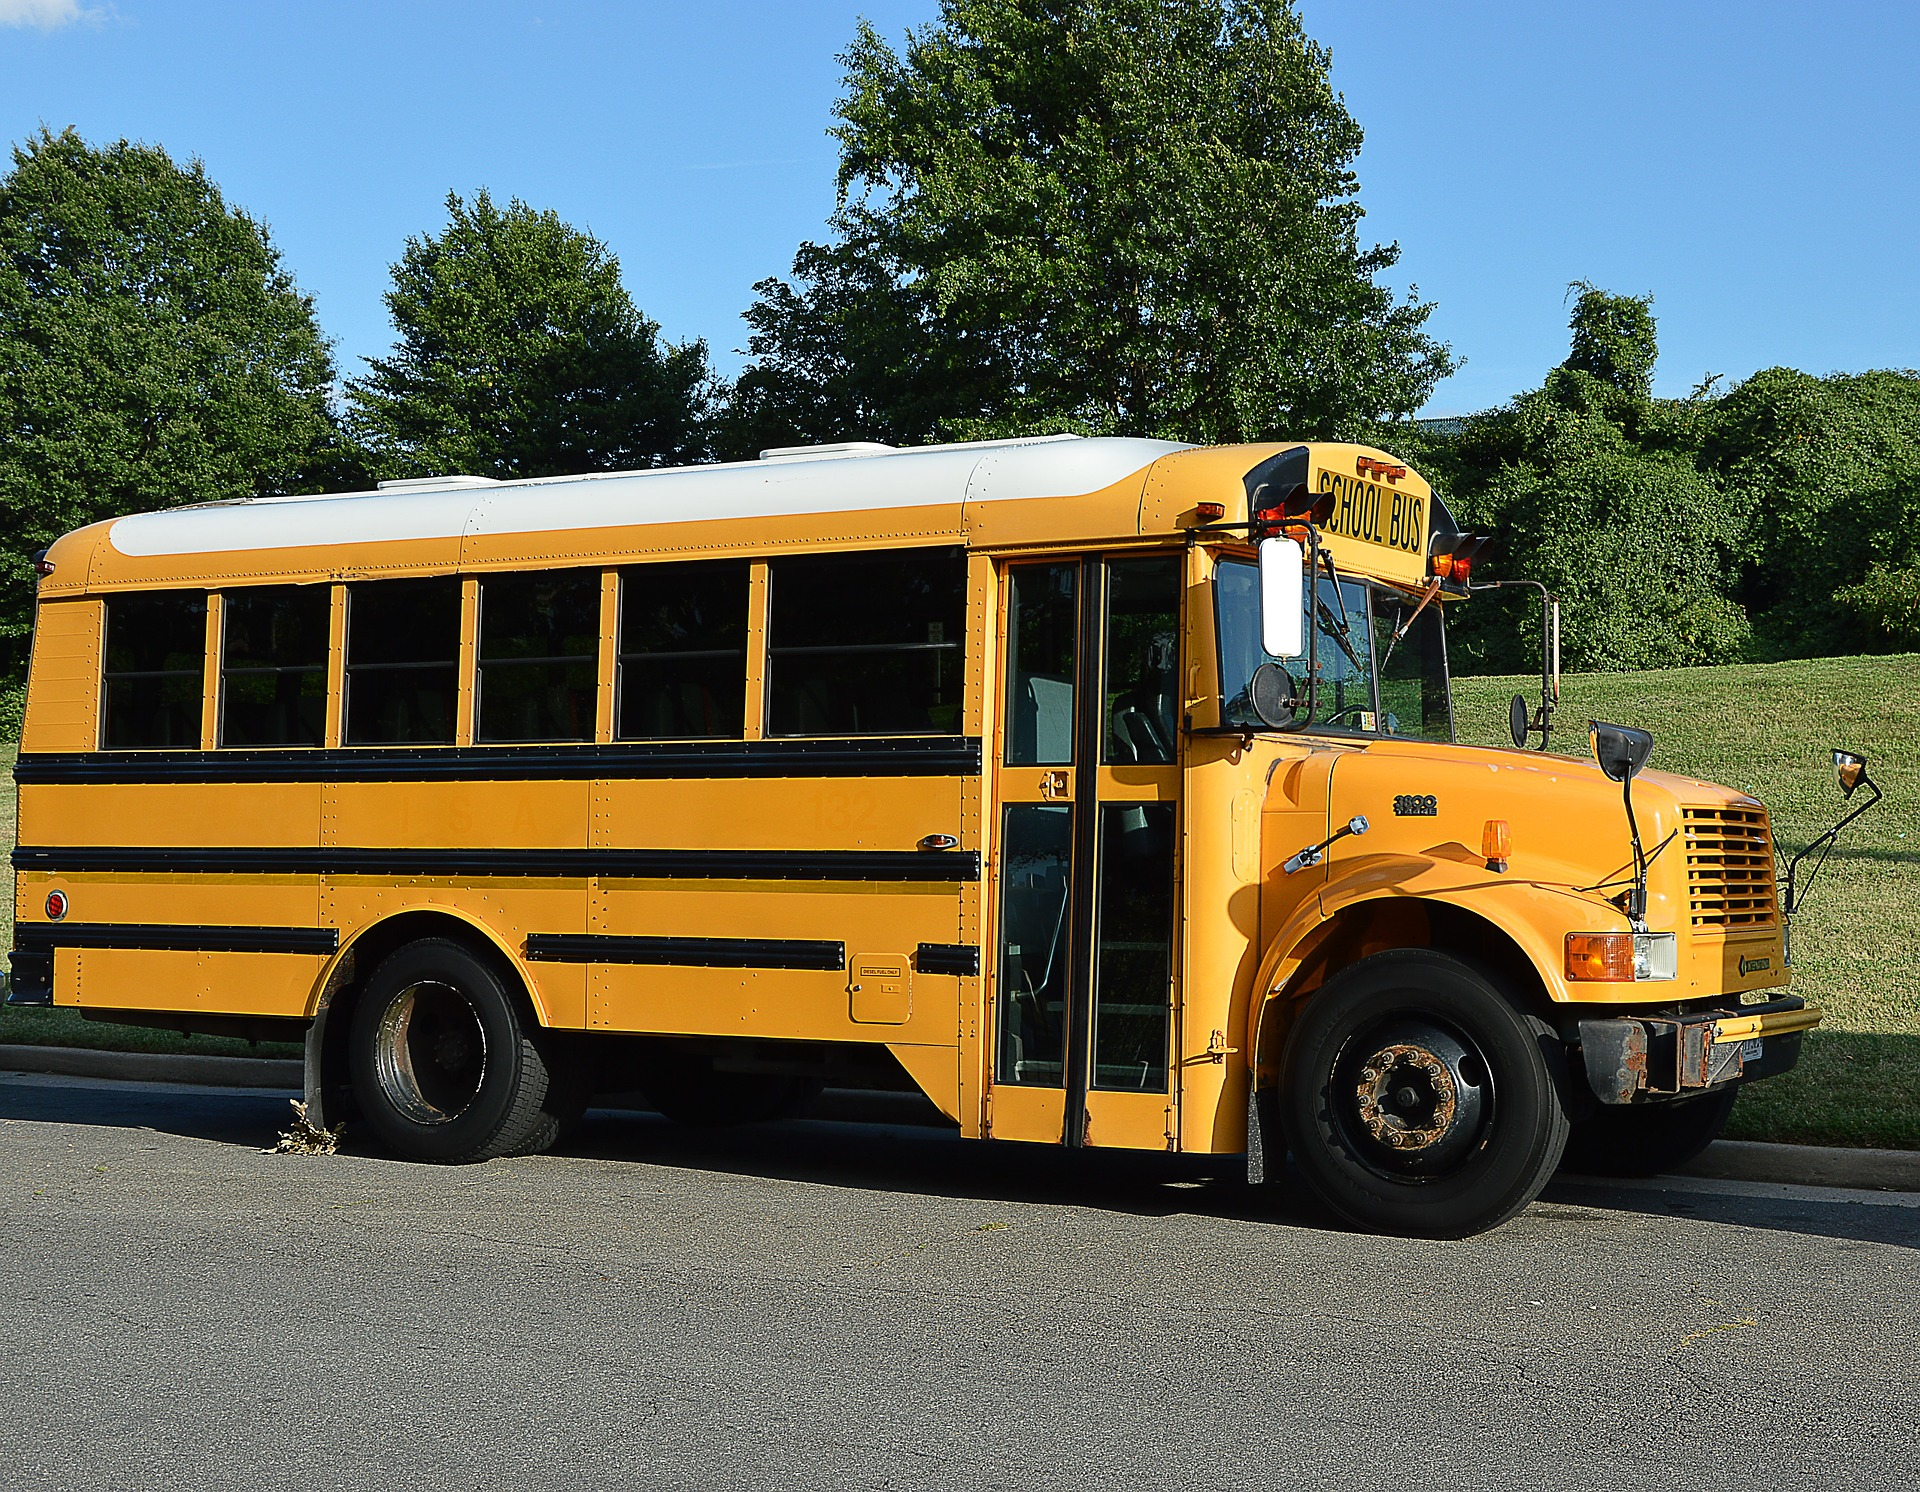 Image of Mendham Township School District Buses